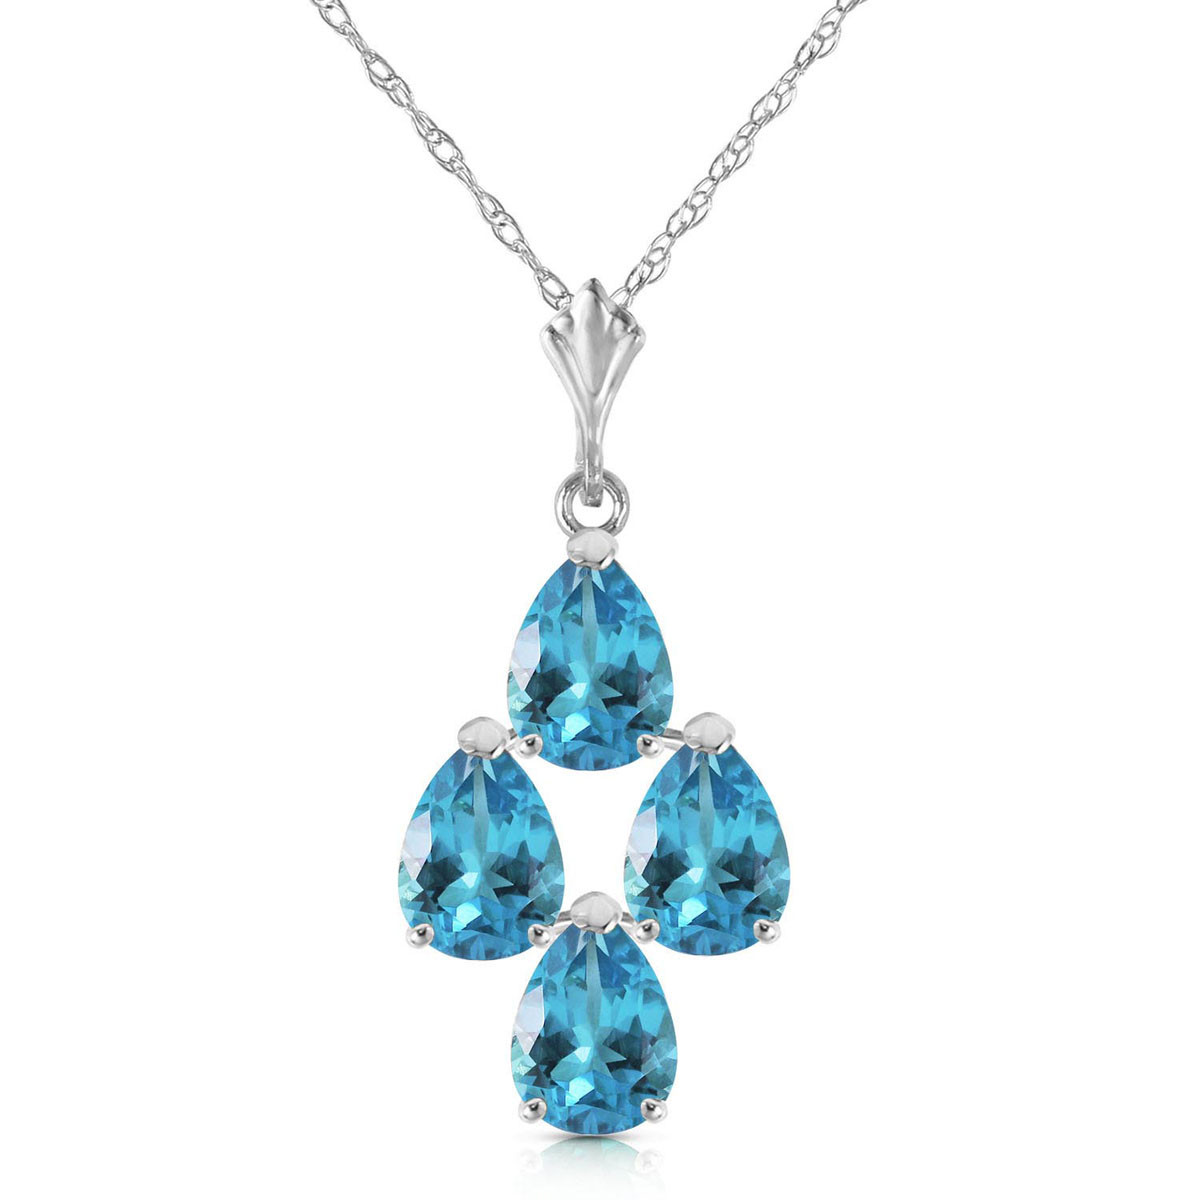 Blue Topaz Chandelier Pendant Necklace 1.5 ctw in 9ct White Gold